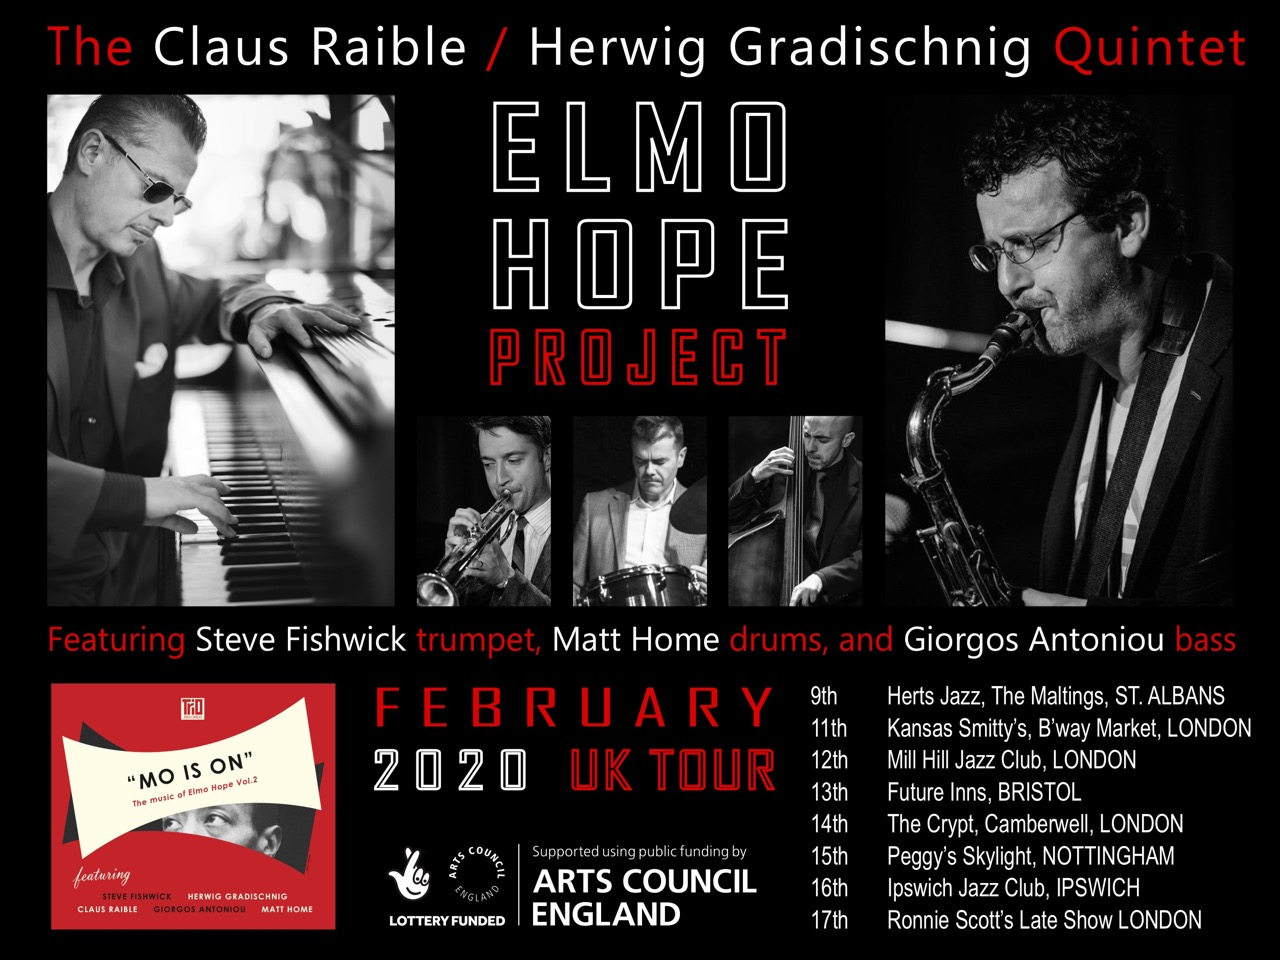 Raible/Gradischnig Quintet - Elmo Hope Project at Herts Jazz in St Albans